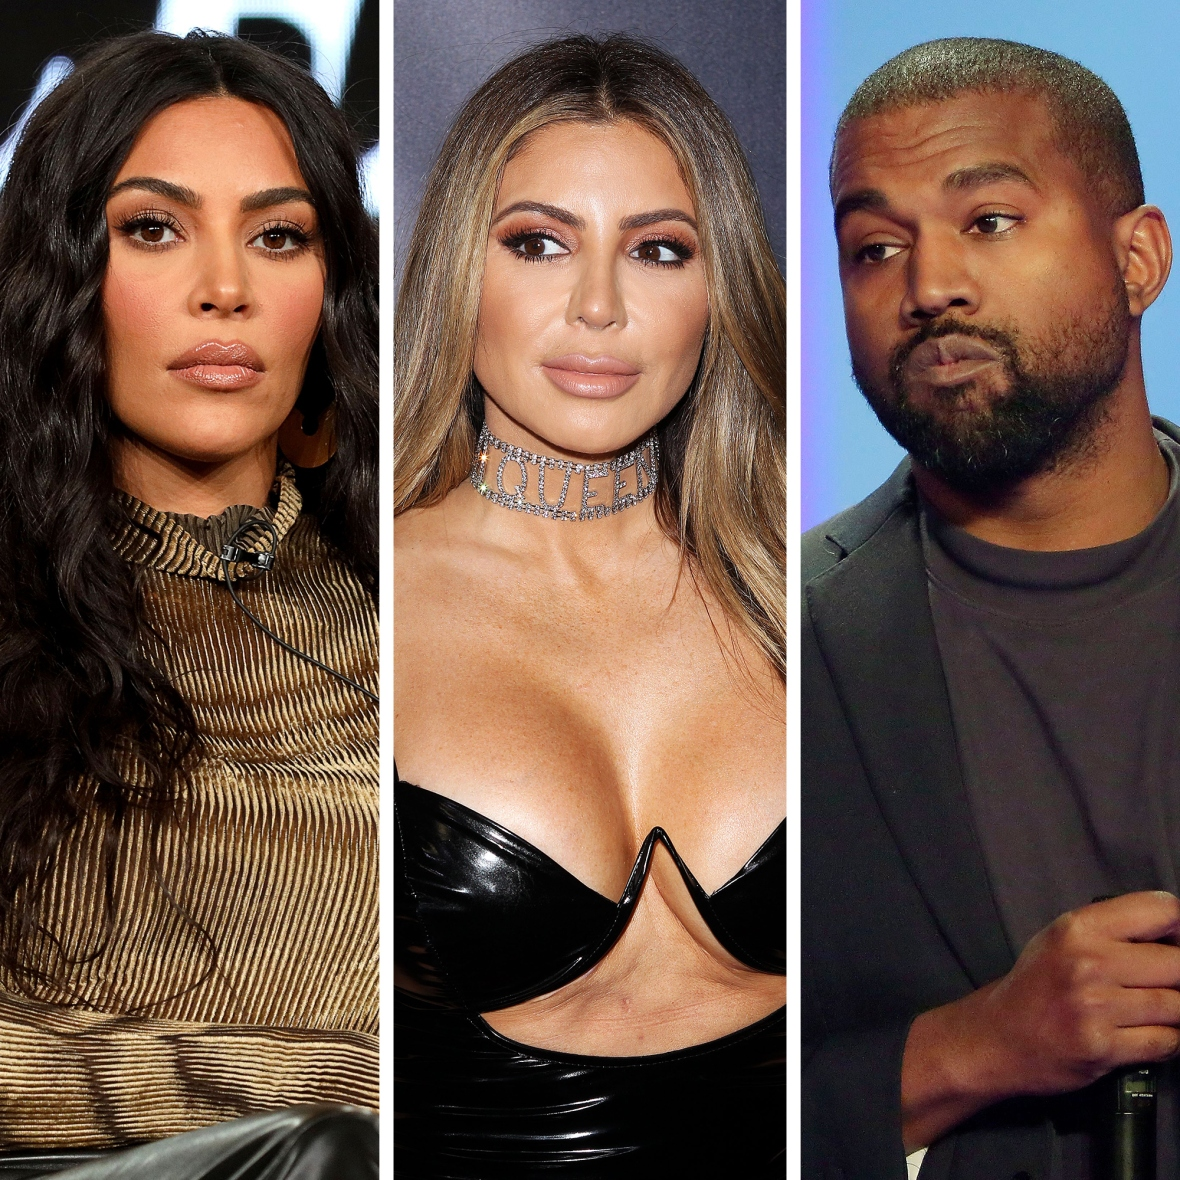 Kim Kardashian Is Really Hurt By Larsa Pippen's Claims About Husband Kanye West